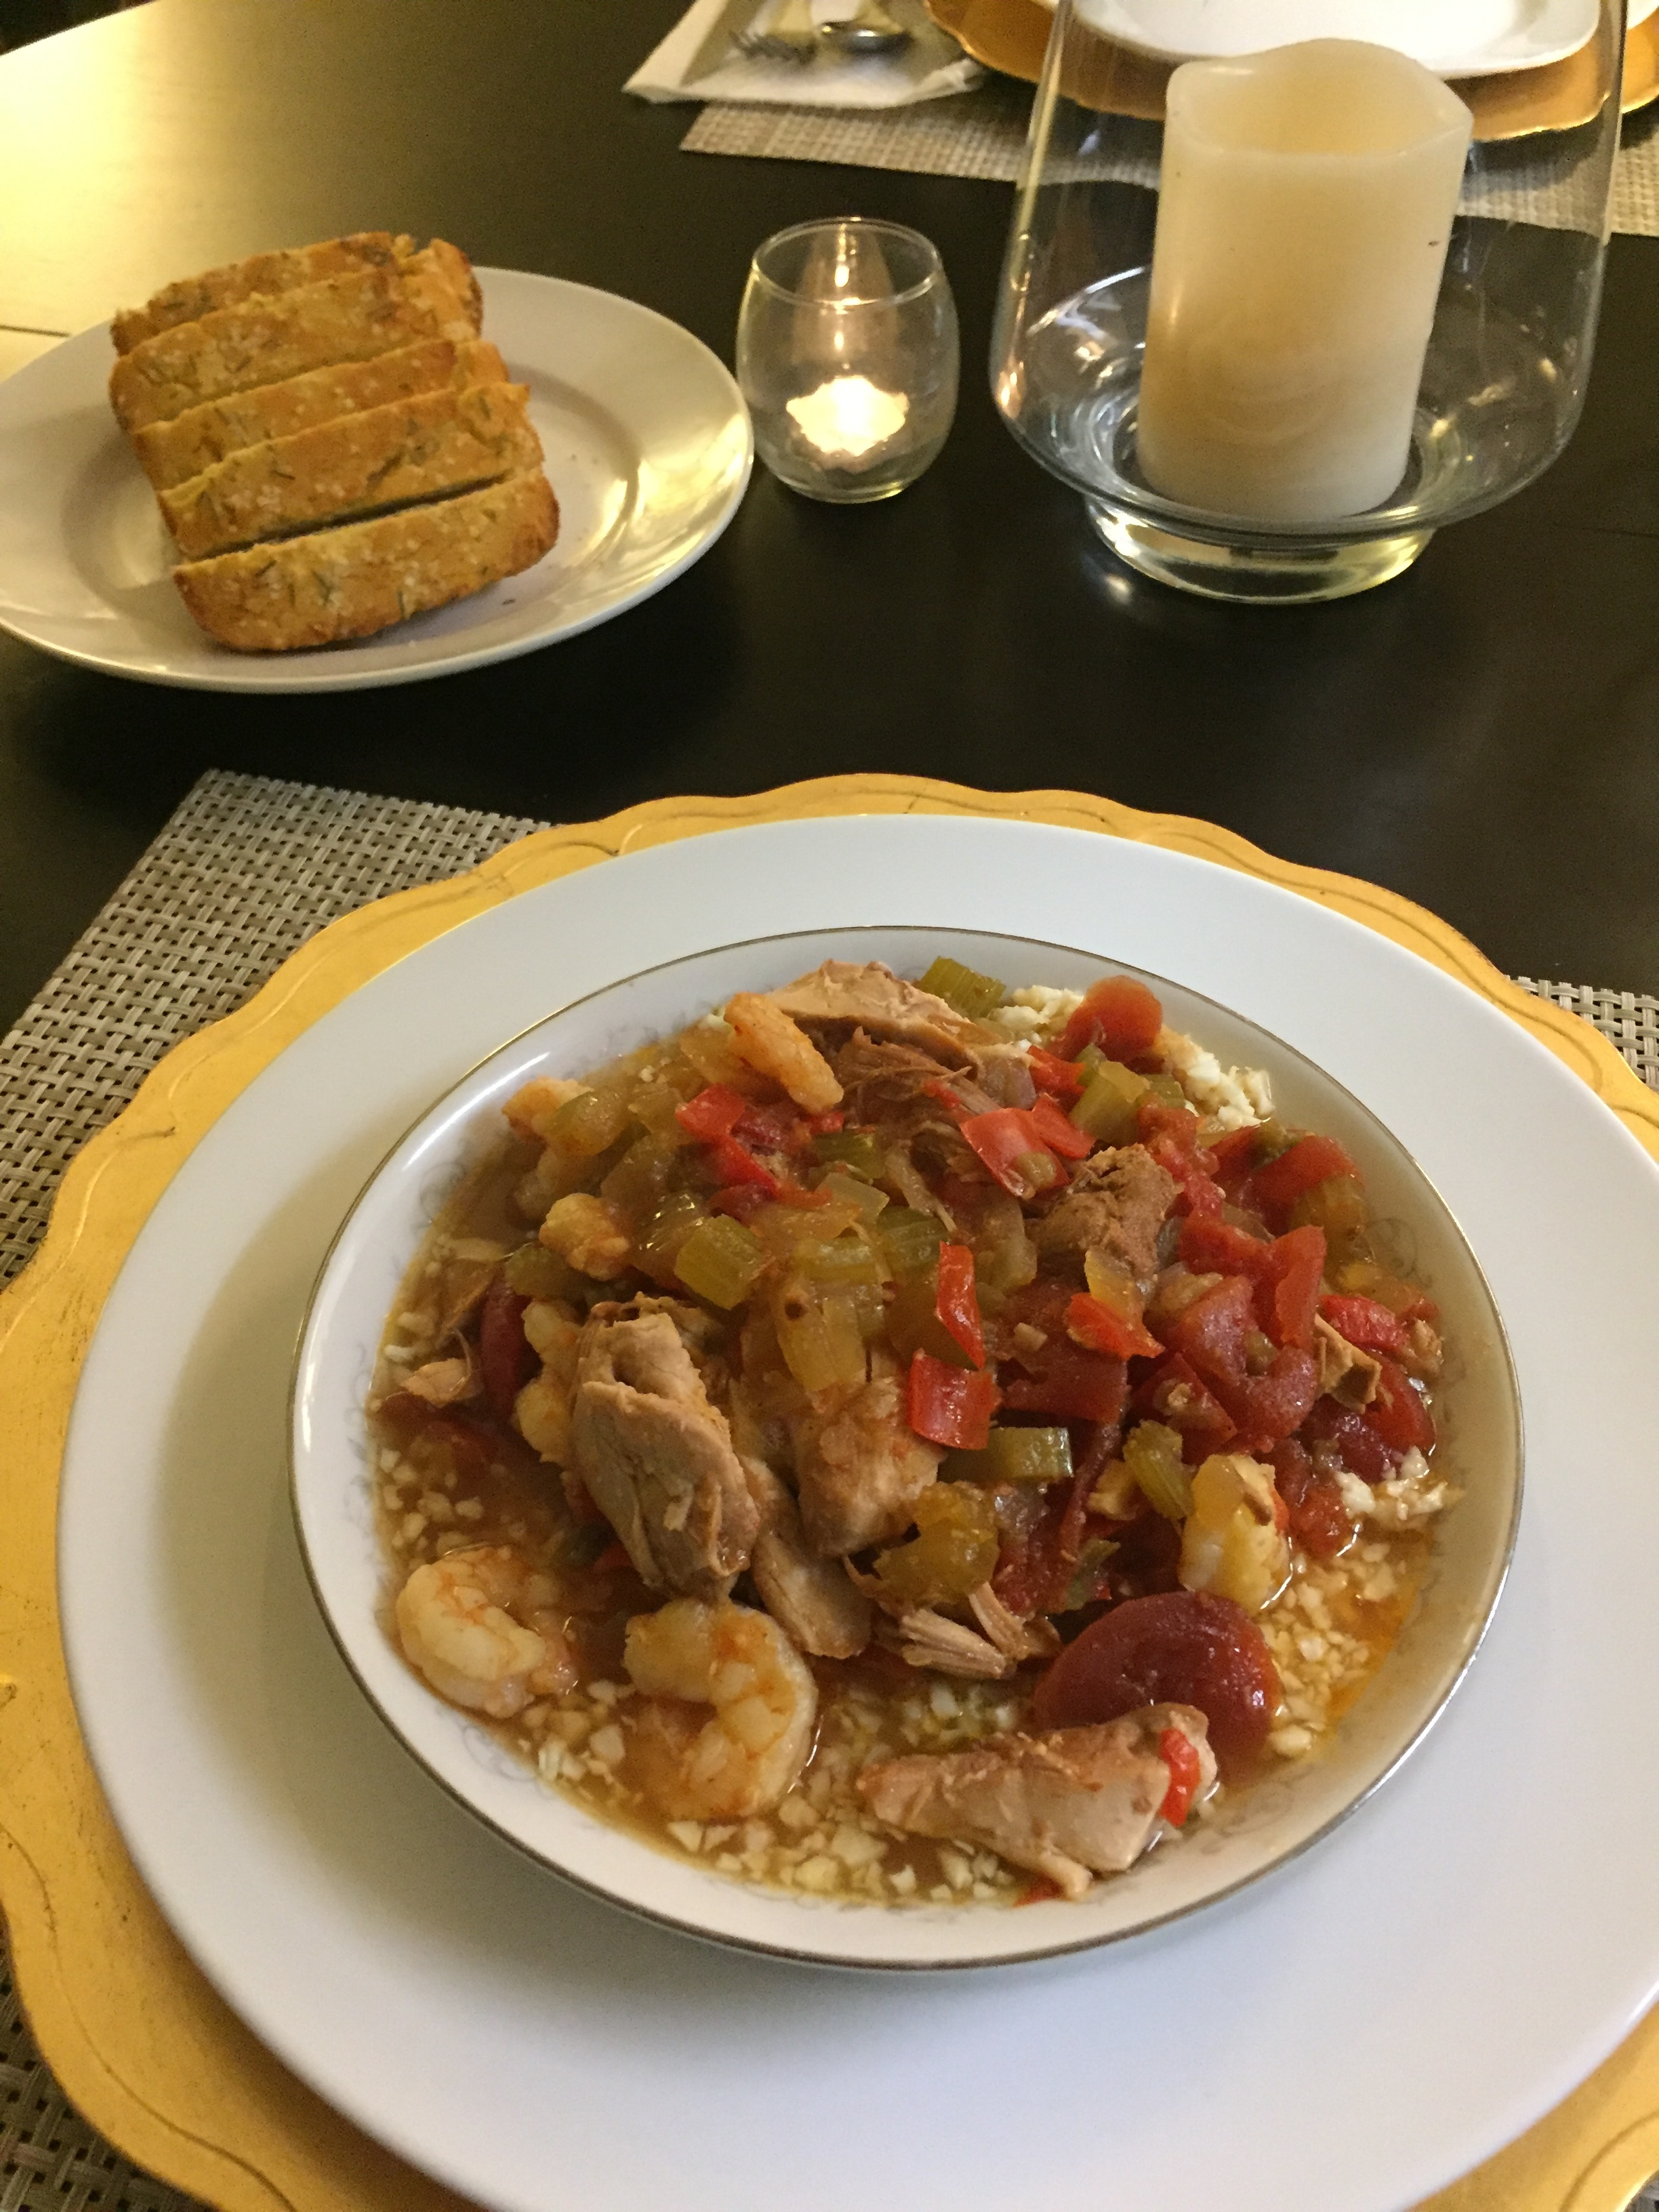 Slow Cooker Cajun Chicken & Shrimp with Riced Cauliflower - Paleo & Whole 30